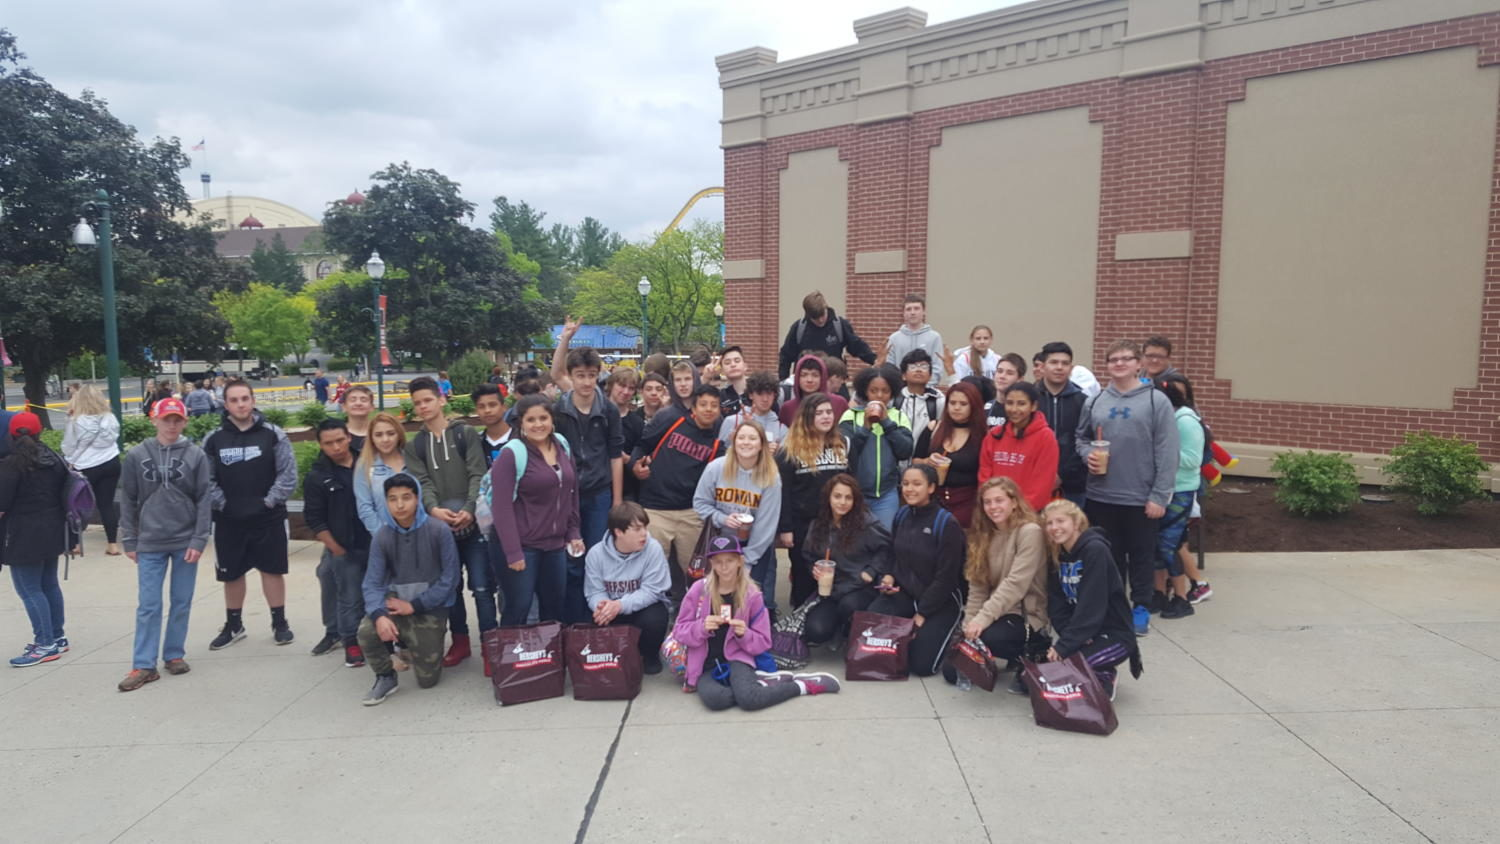 Students pose as a group when they attended Great Adventure's Spring Physics Day on Friday, May 12.